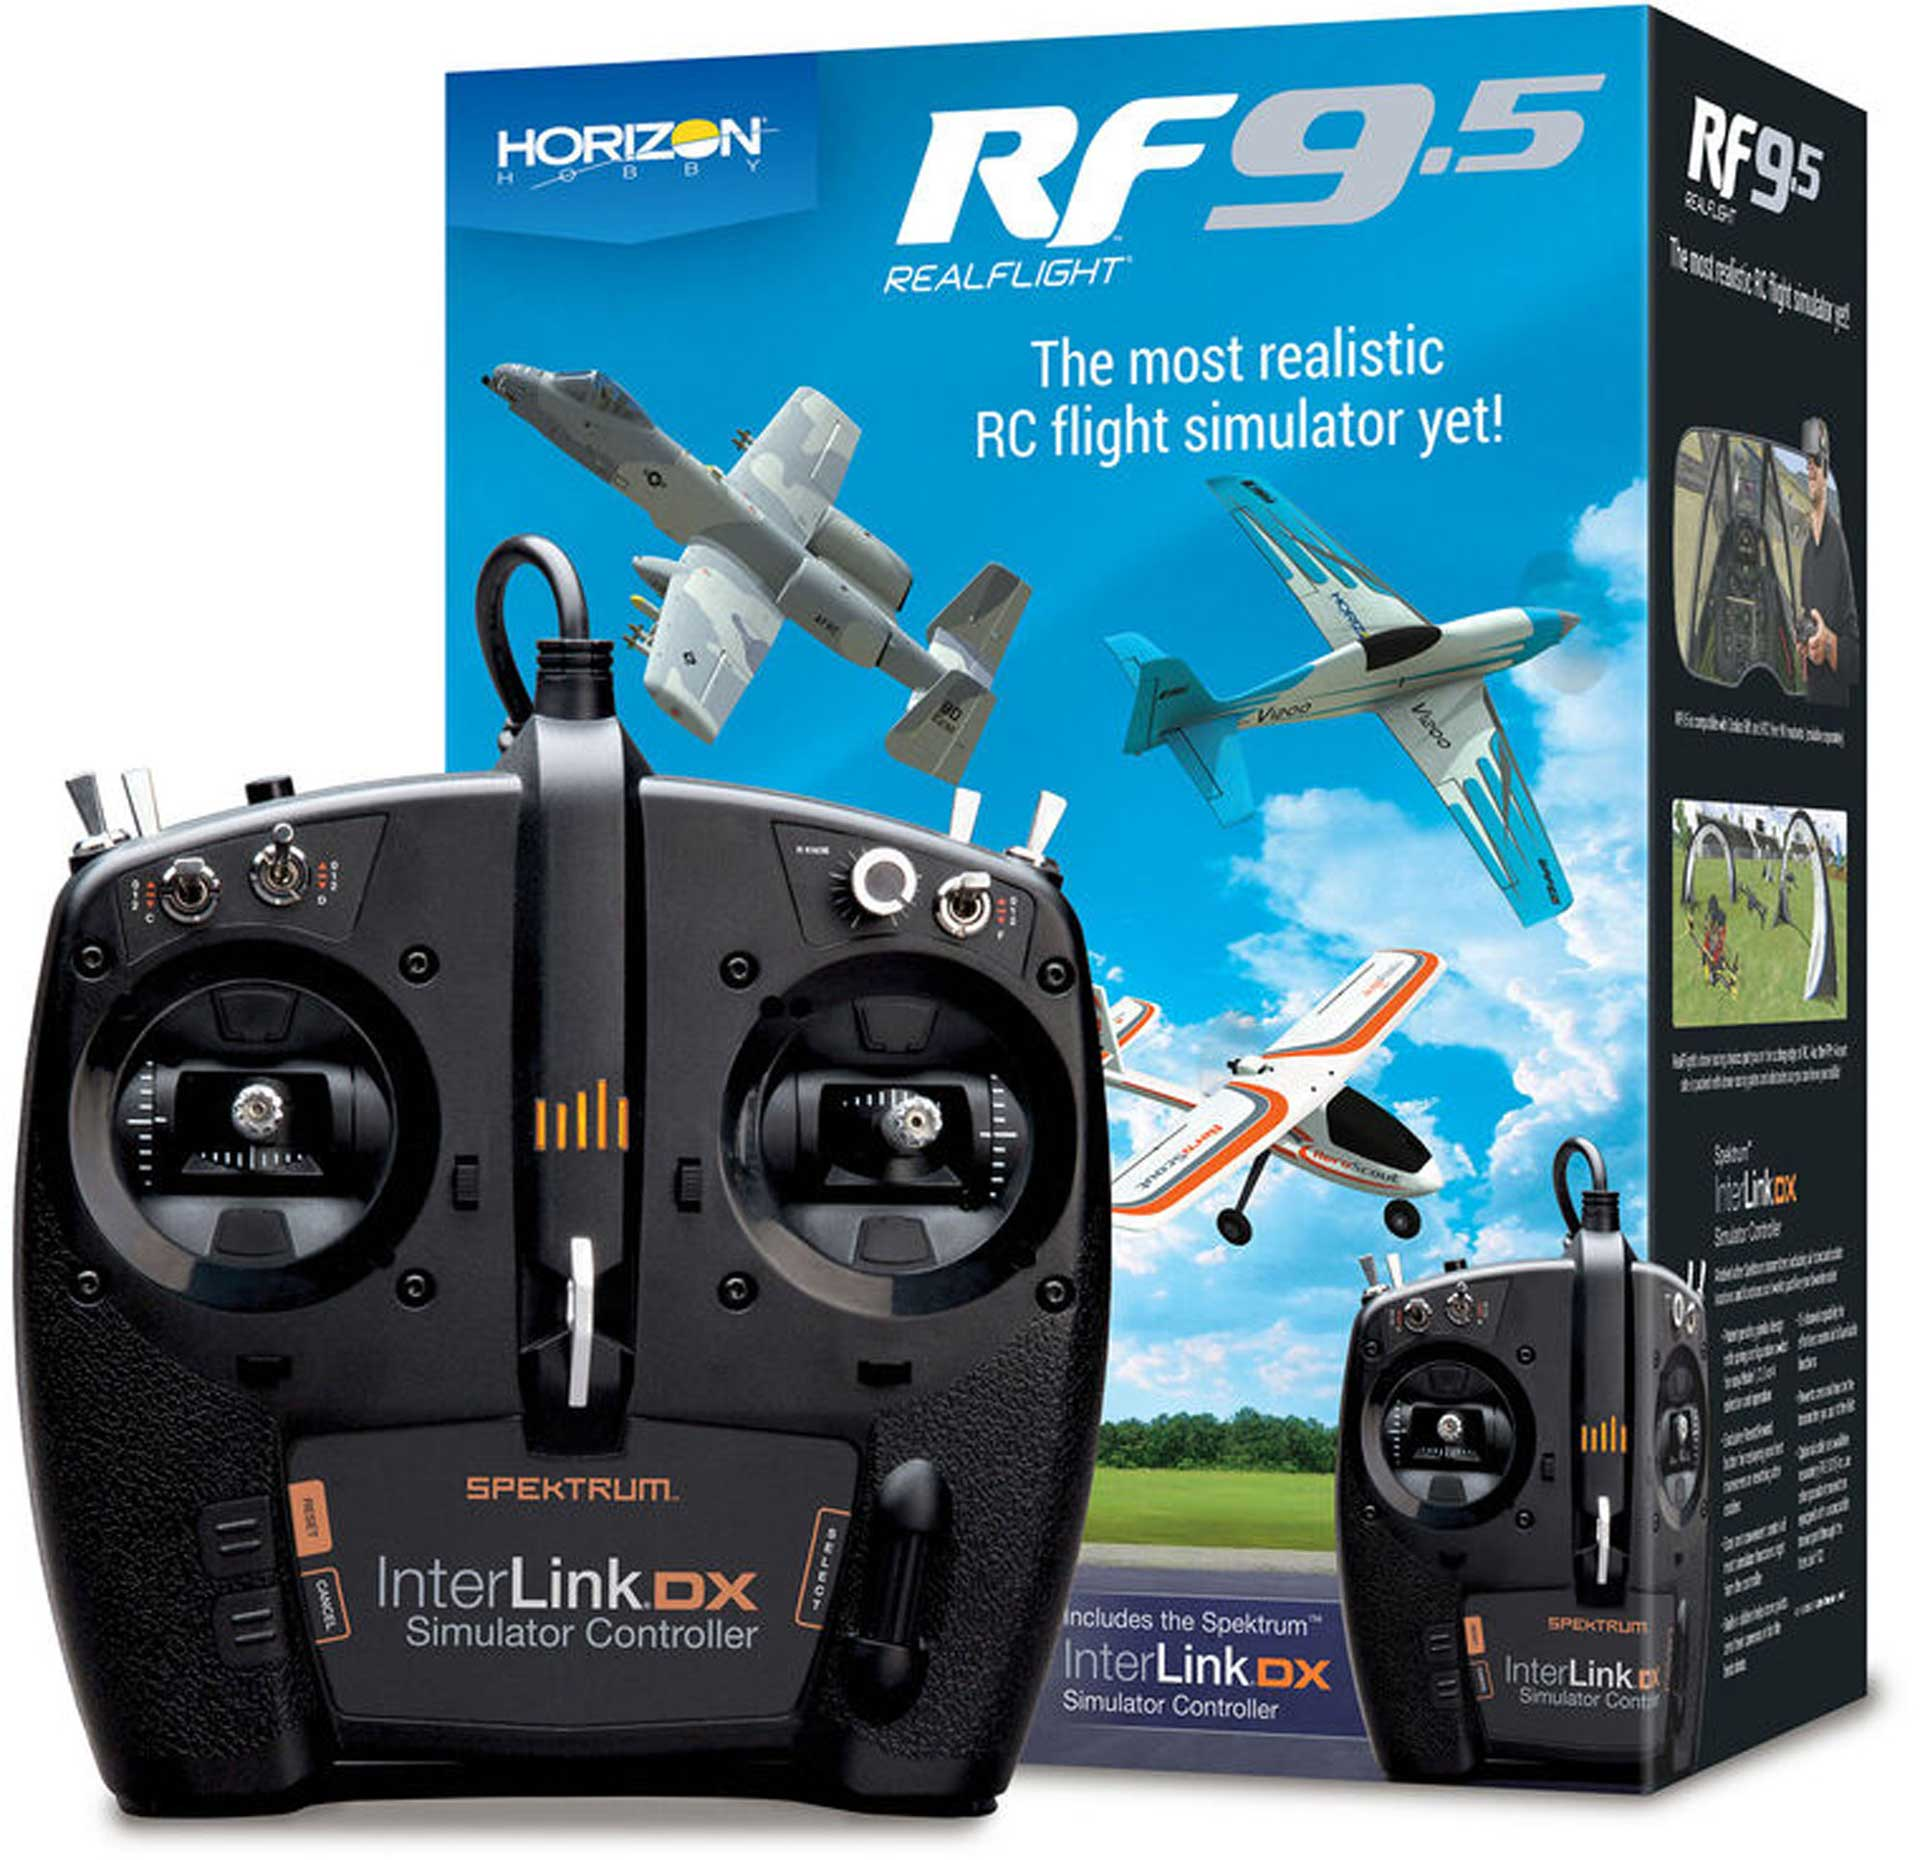 REALFLIGHT RF 9.5 Flugsimulator Software incl. Spektrum Interlink DX Controller